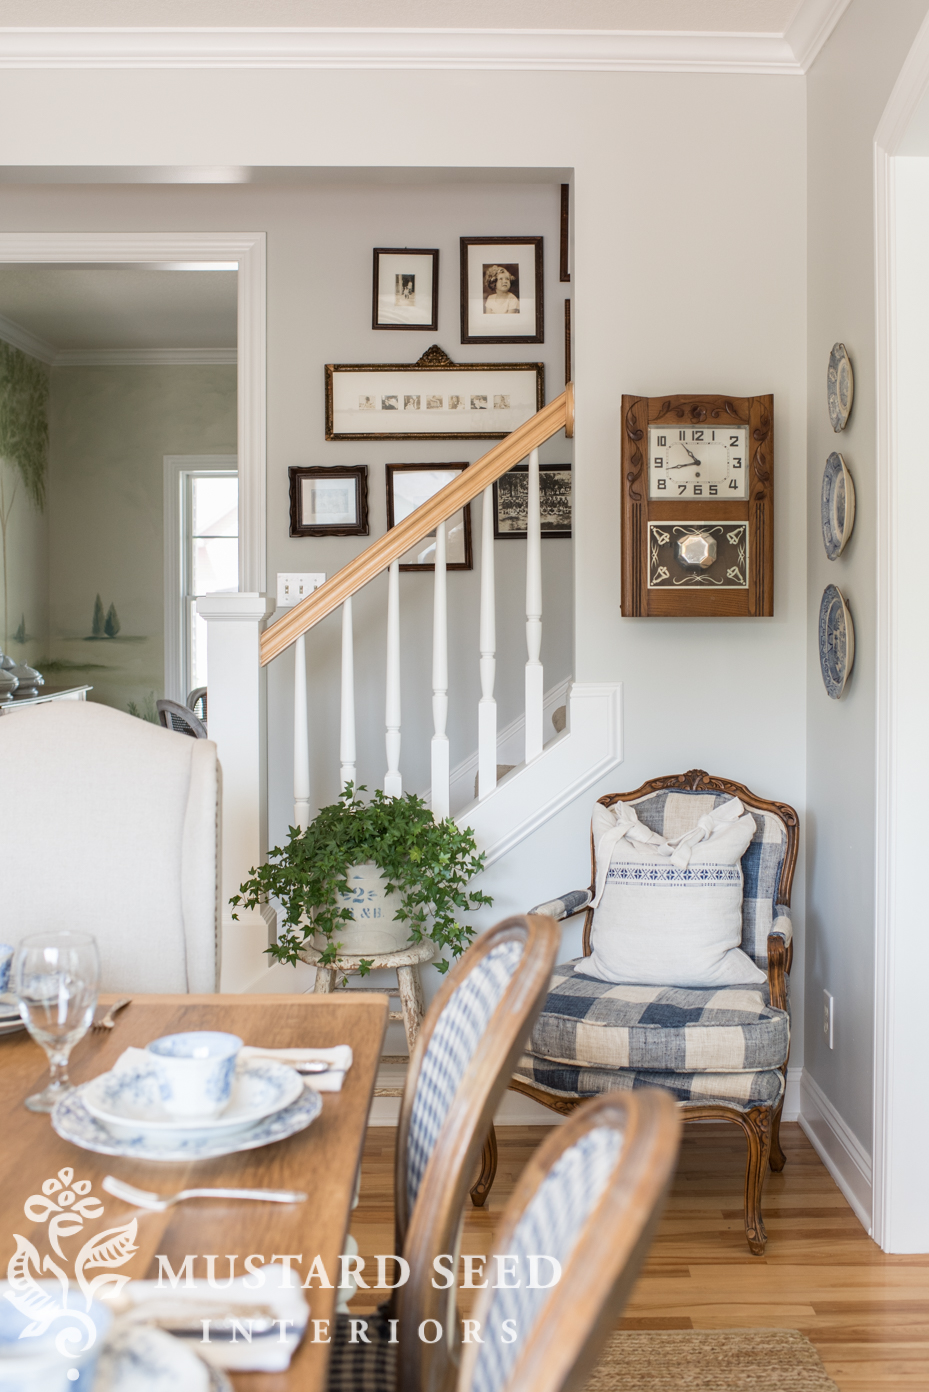 Simple farmhouse style elements can bring a room together with a unique, gorgeous style